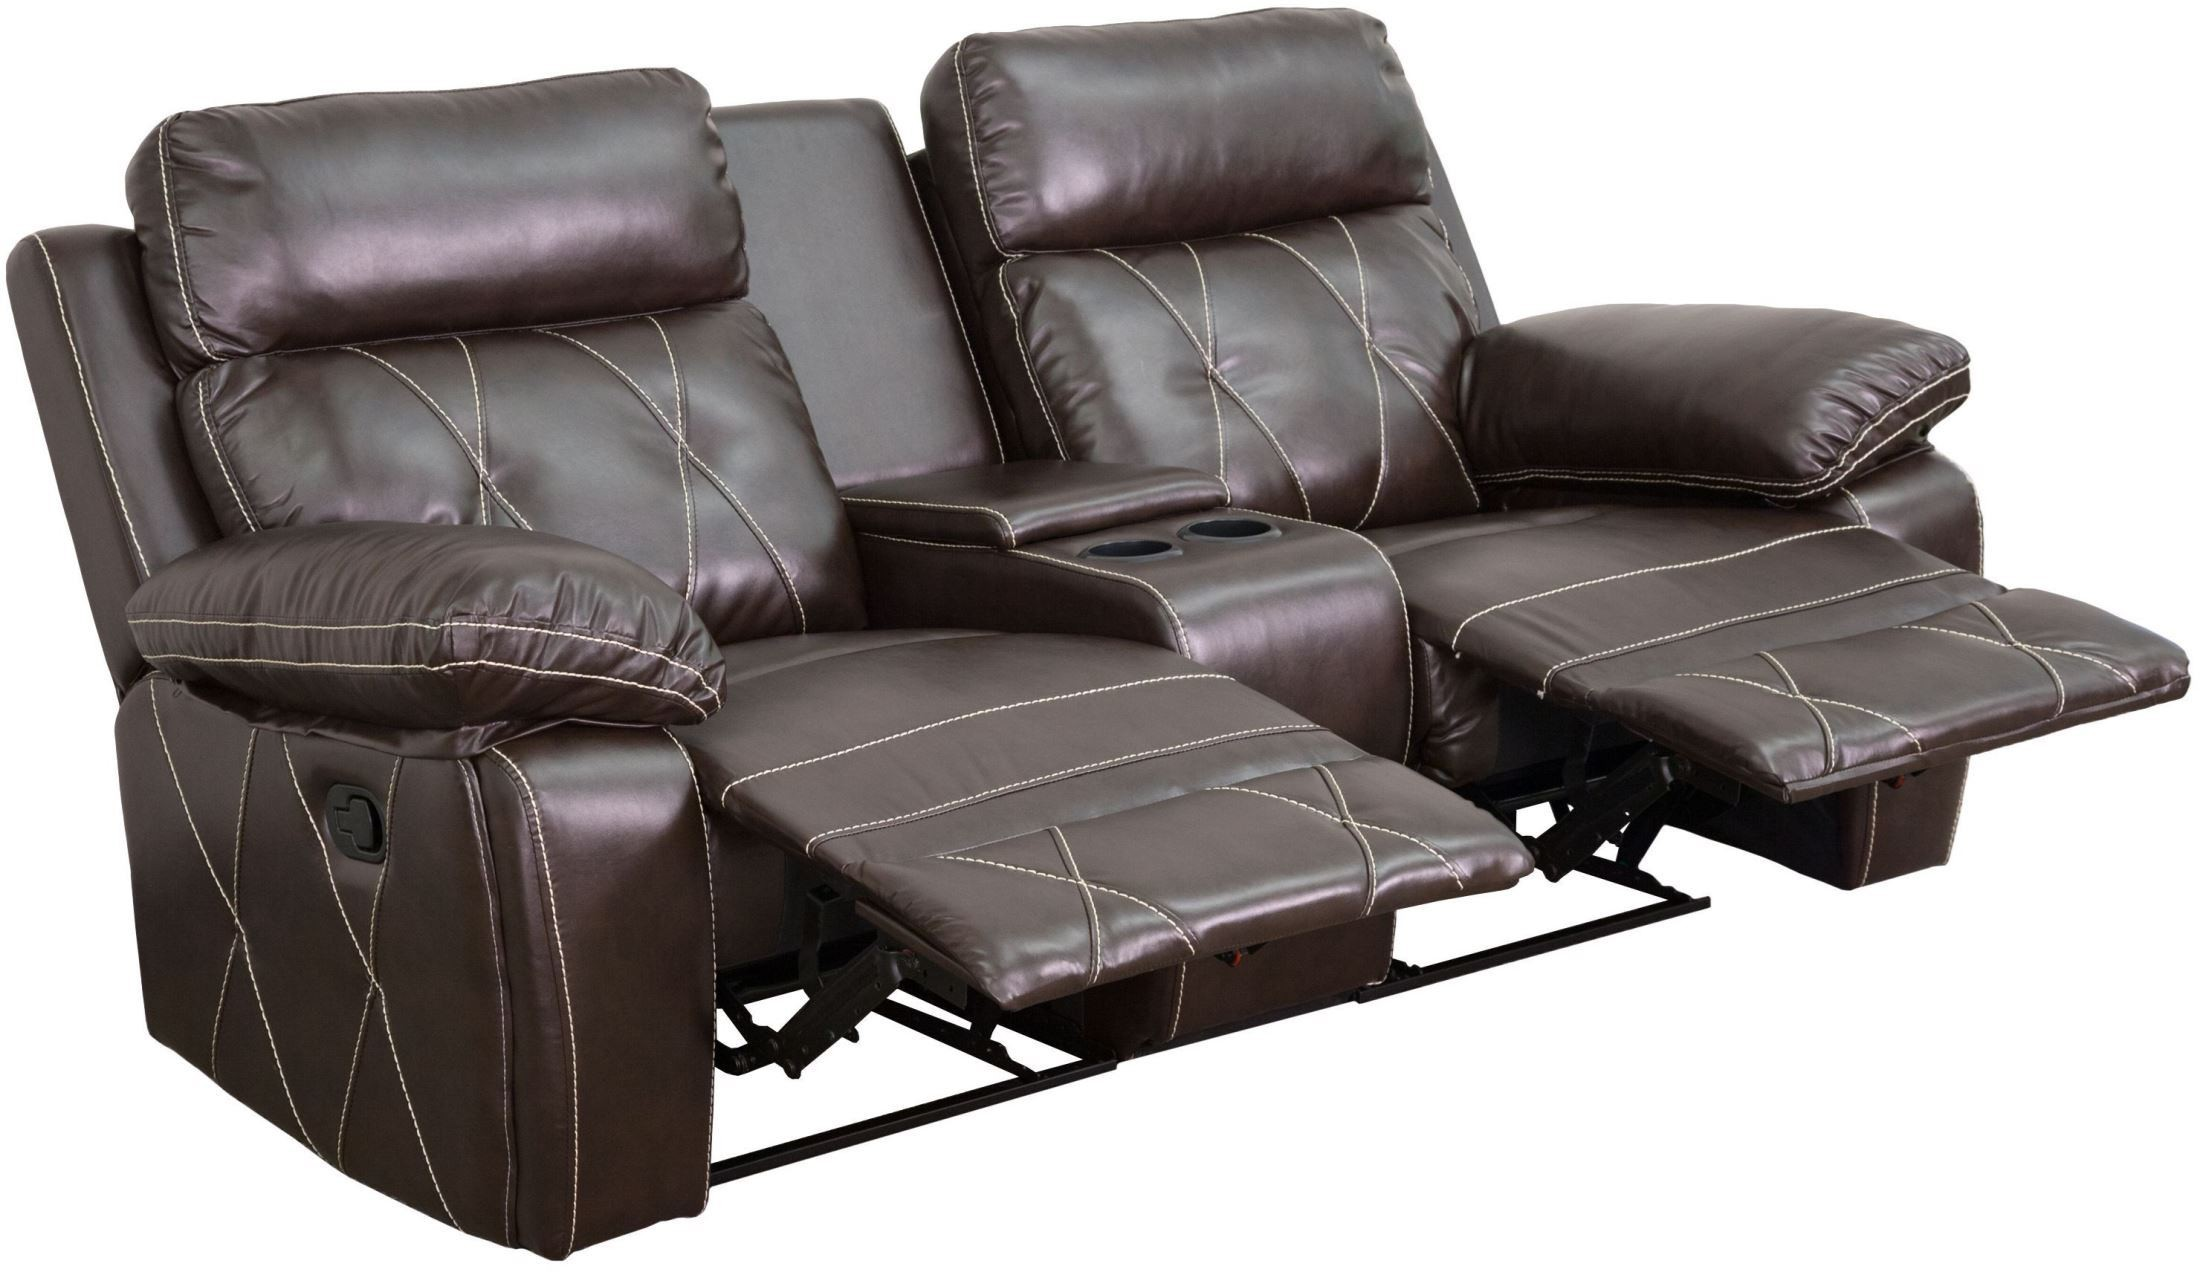 2 seat theater chairs chair covers hire bolton reel comfort series reclining brown leather